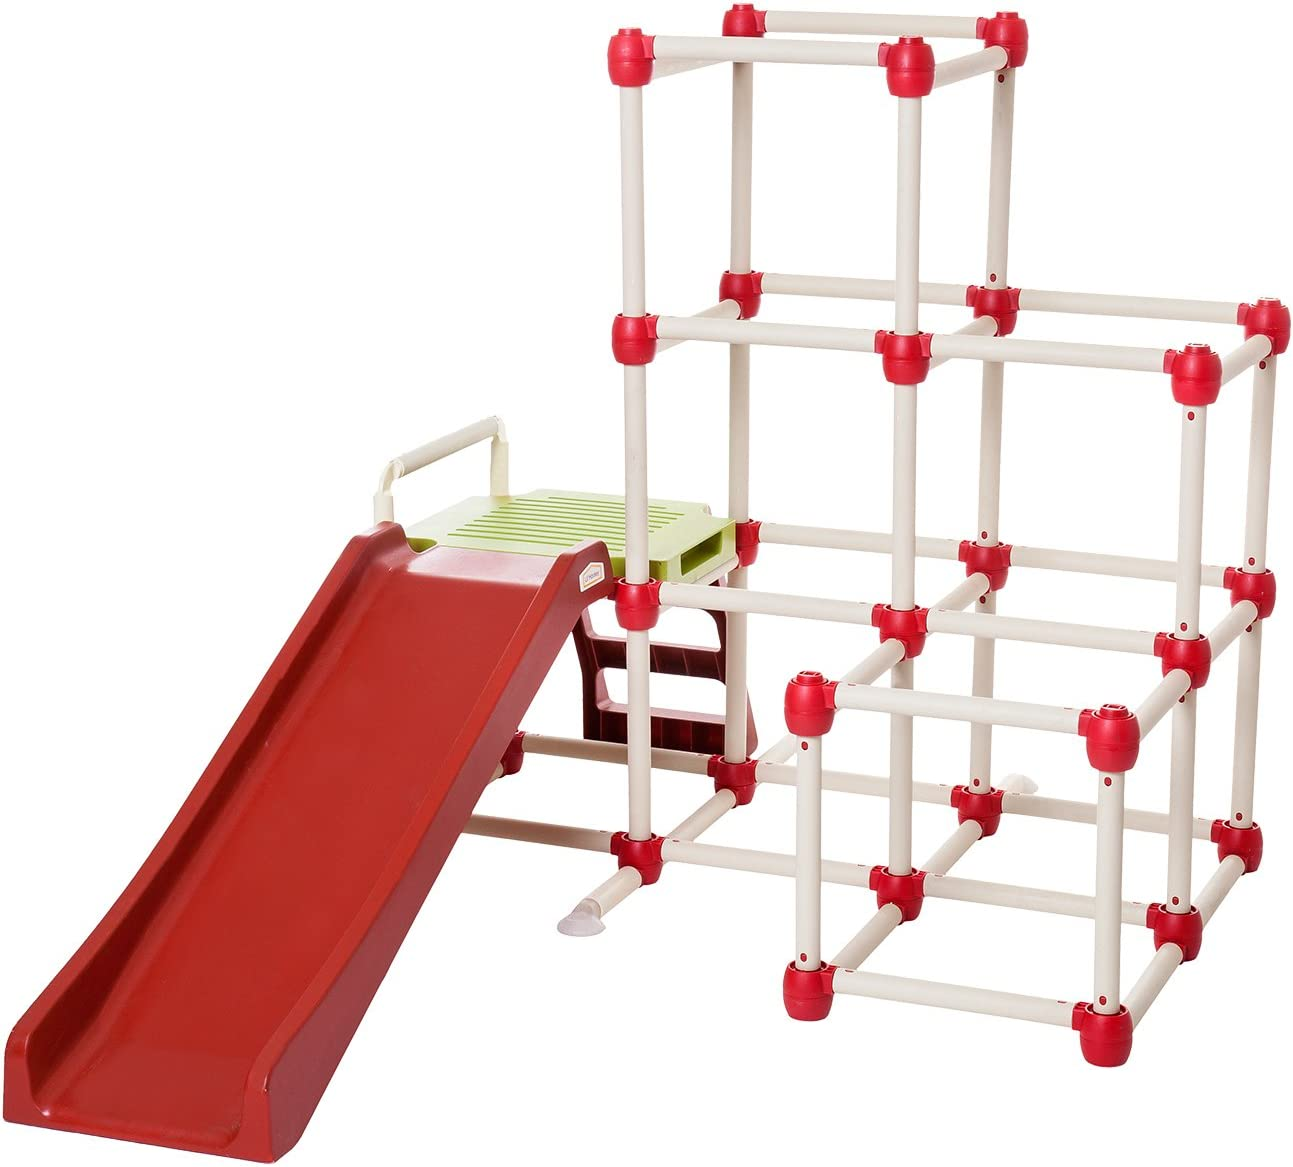 Top 10 Best Jungle Gym For Kids (2020 Reviews & Buying Guide) 10